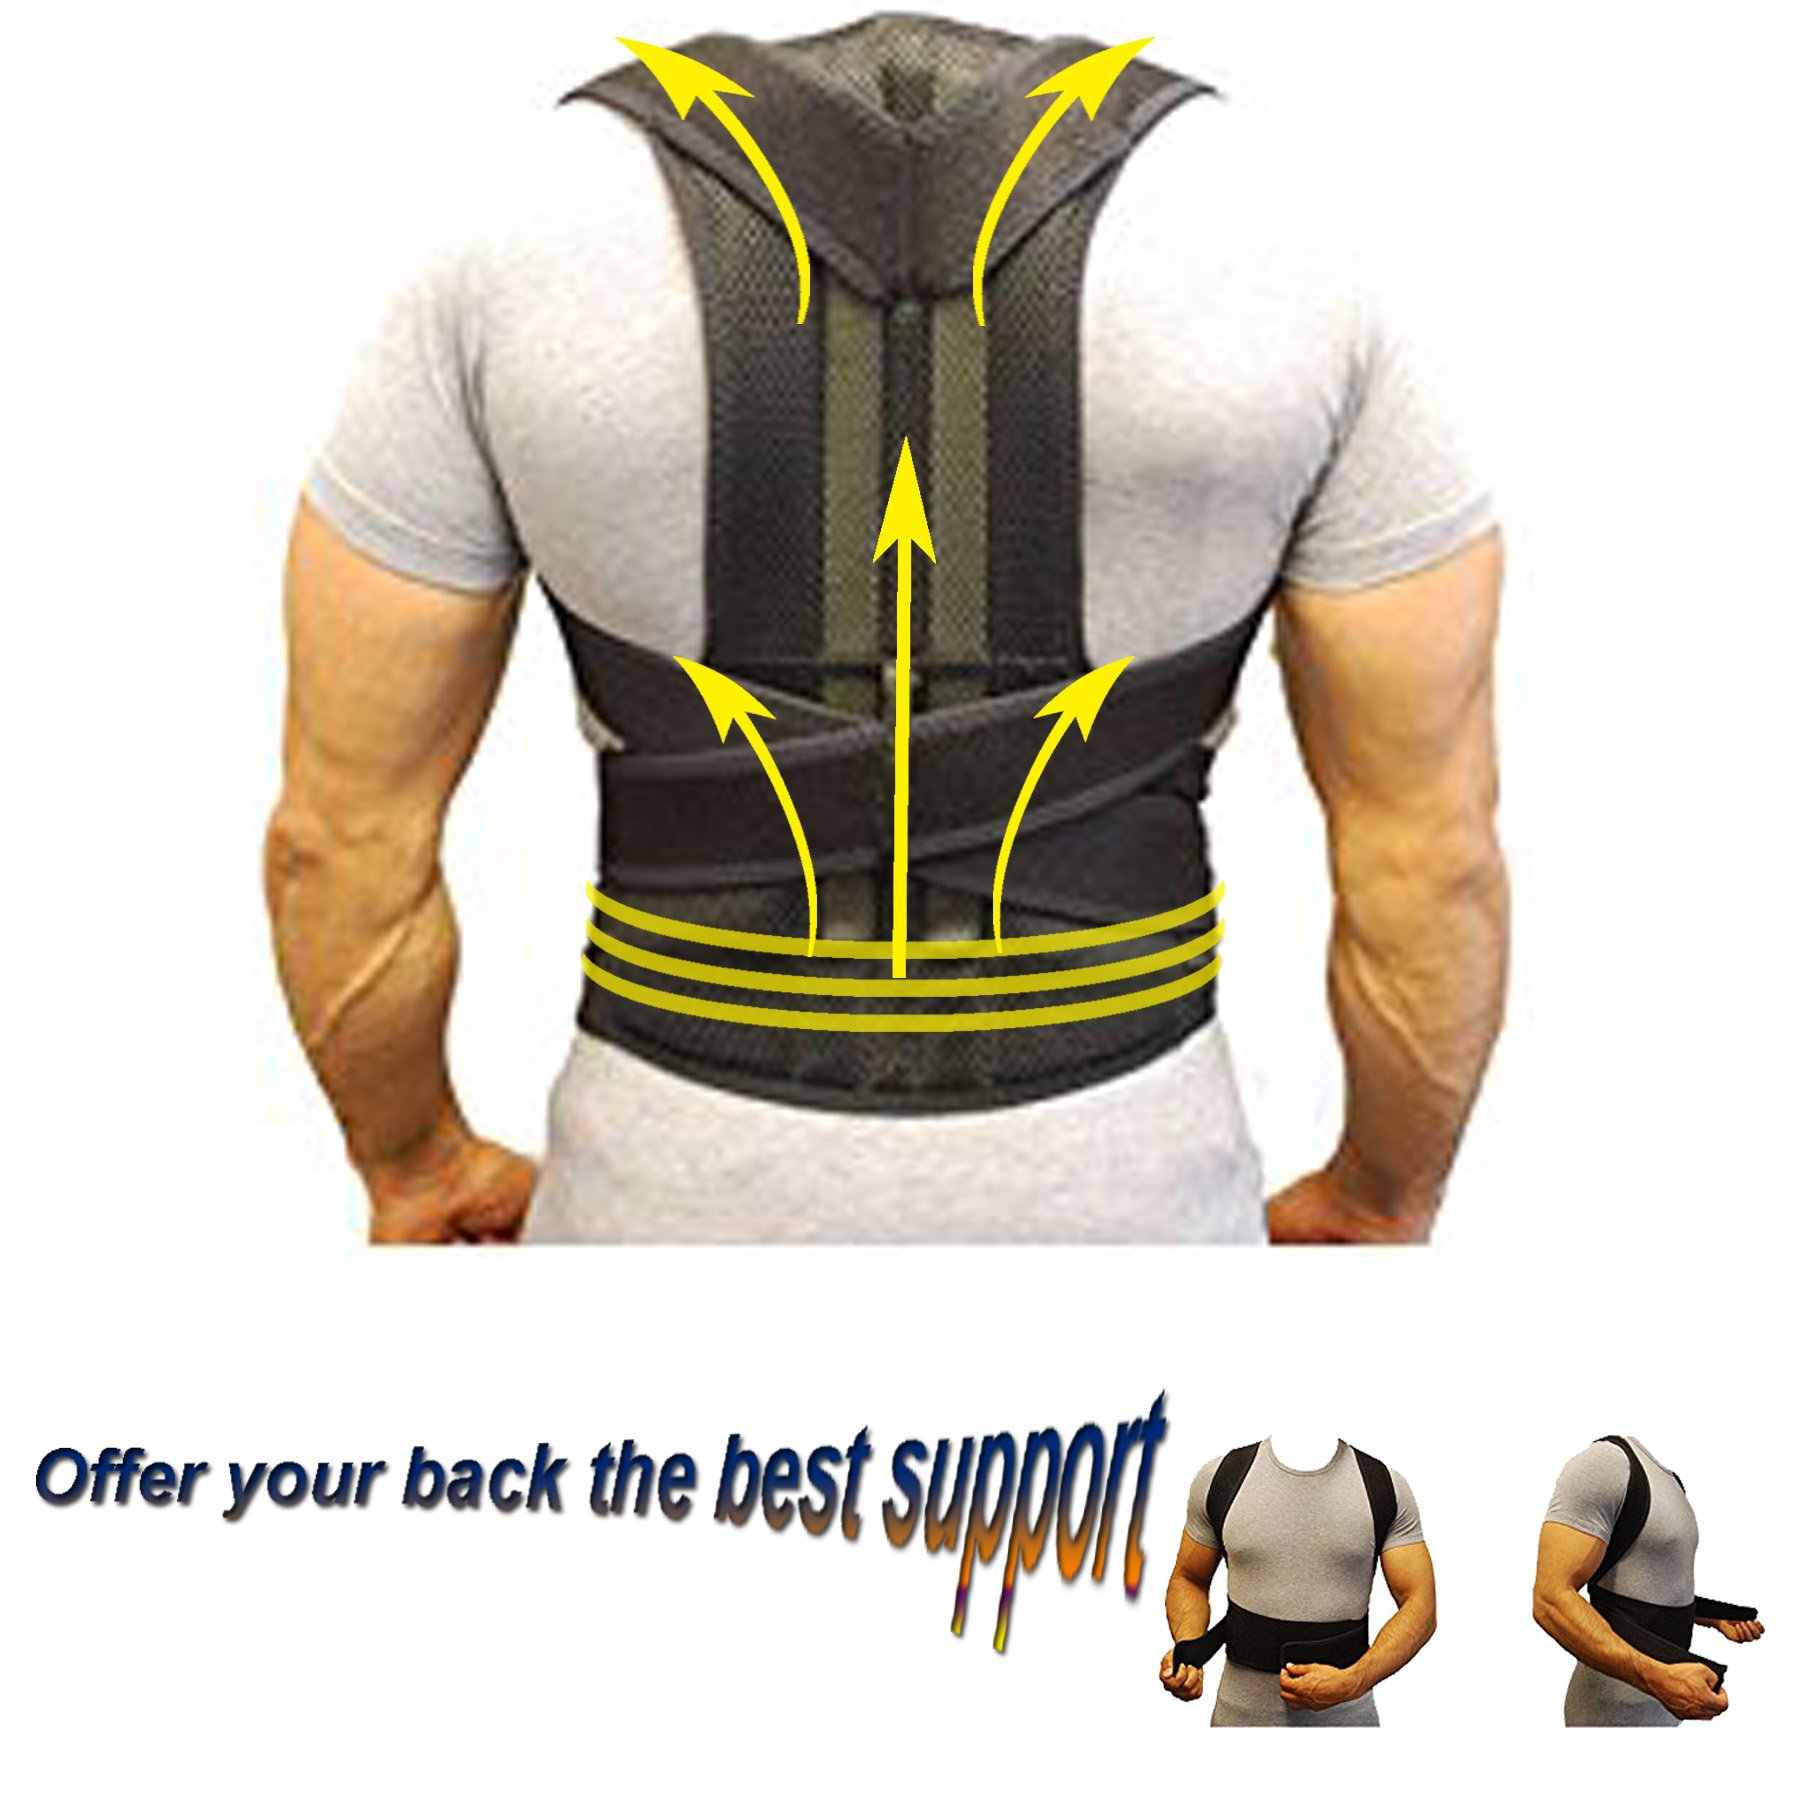 Back Support Posture Corrector Belt Unisex- Protect Back for Old and Young- Improve Posture Relieve Pain- Adjustable Black